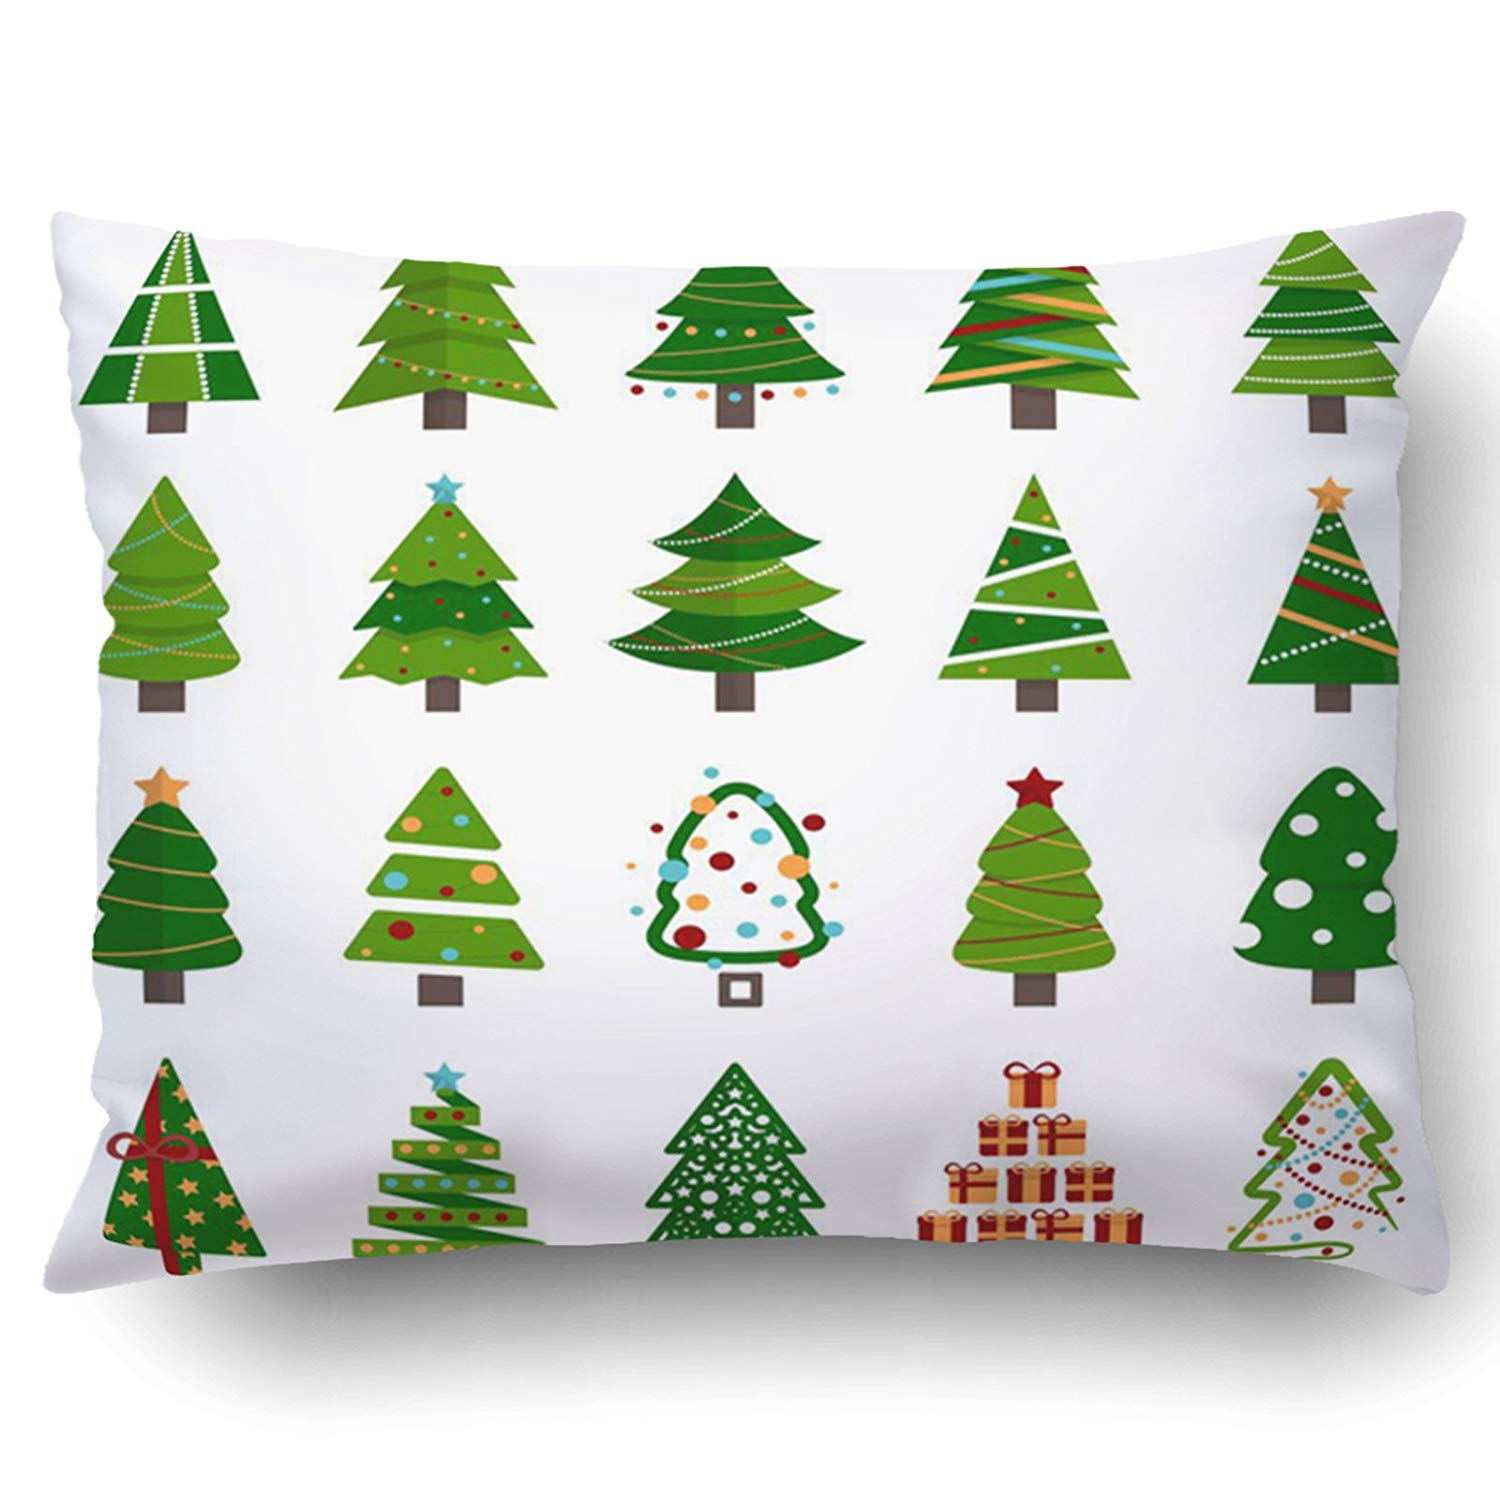 WOPOP Xmas Different Christmas Tree Set Green Xmas Gift Pillow Case Cushion Cover Case Throw Pillow Case 20x30 inches